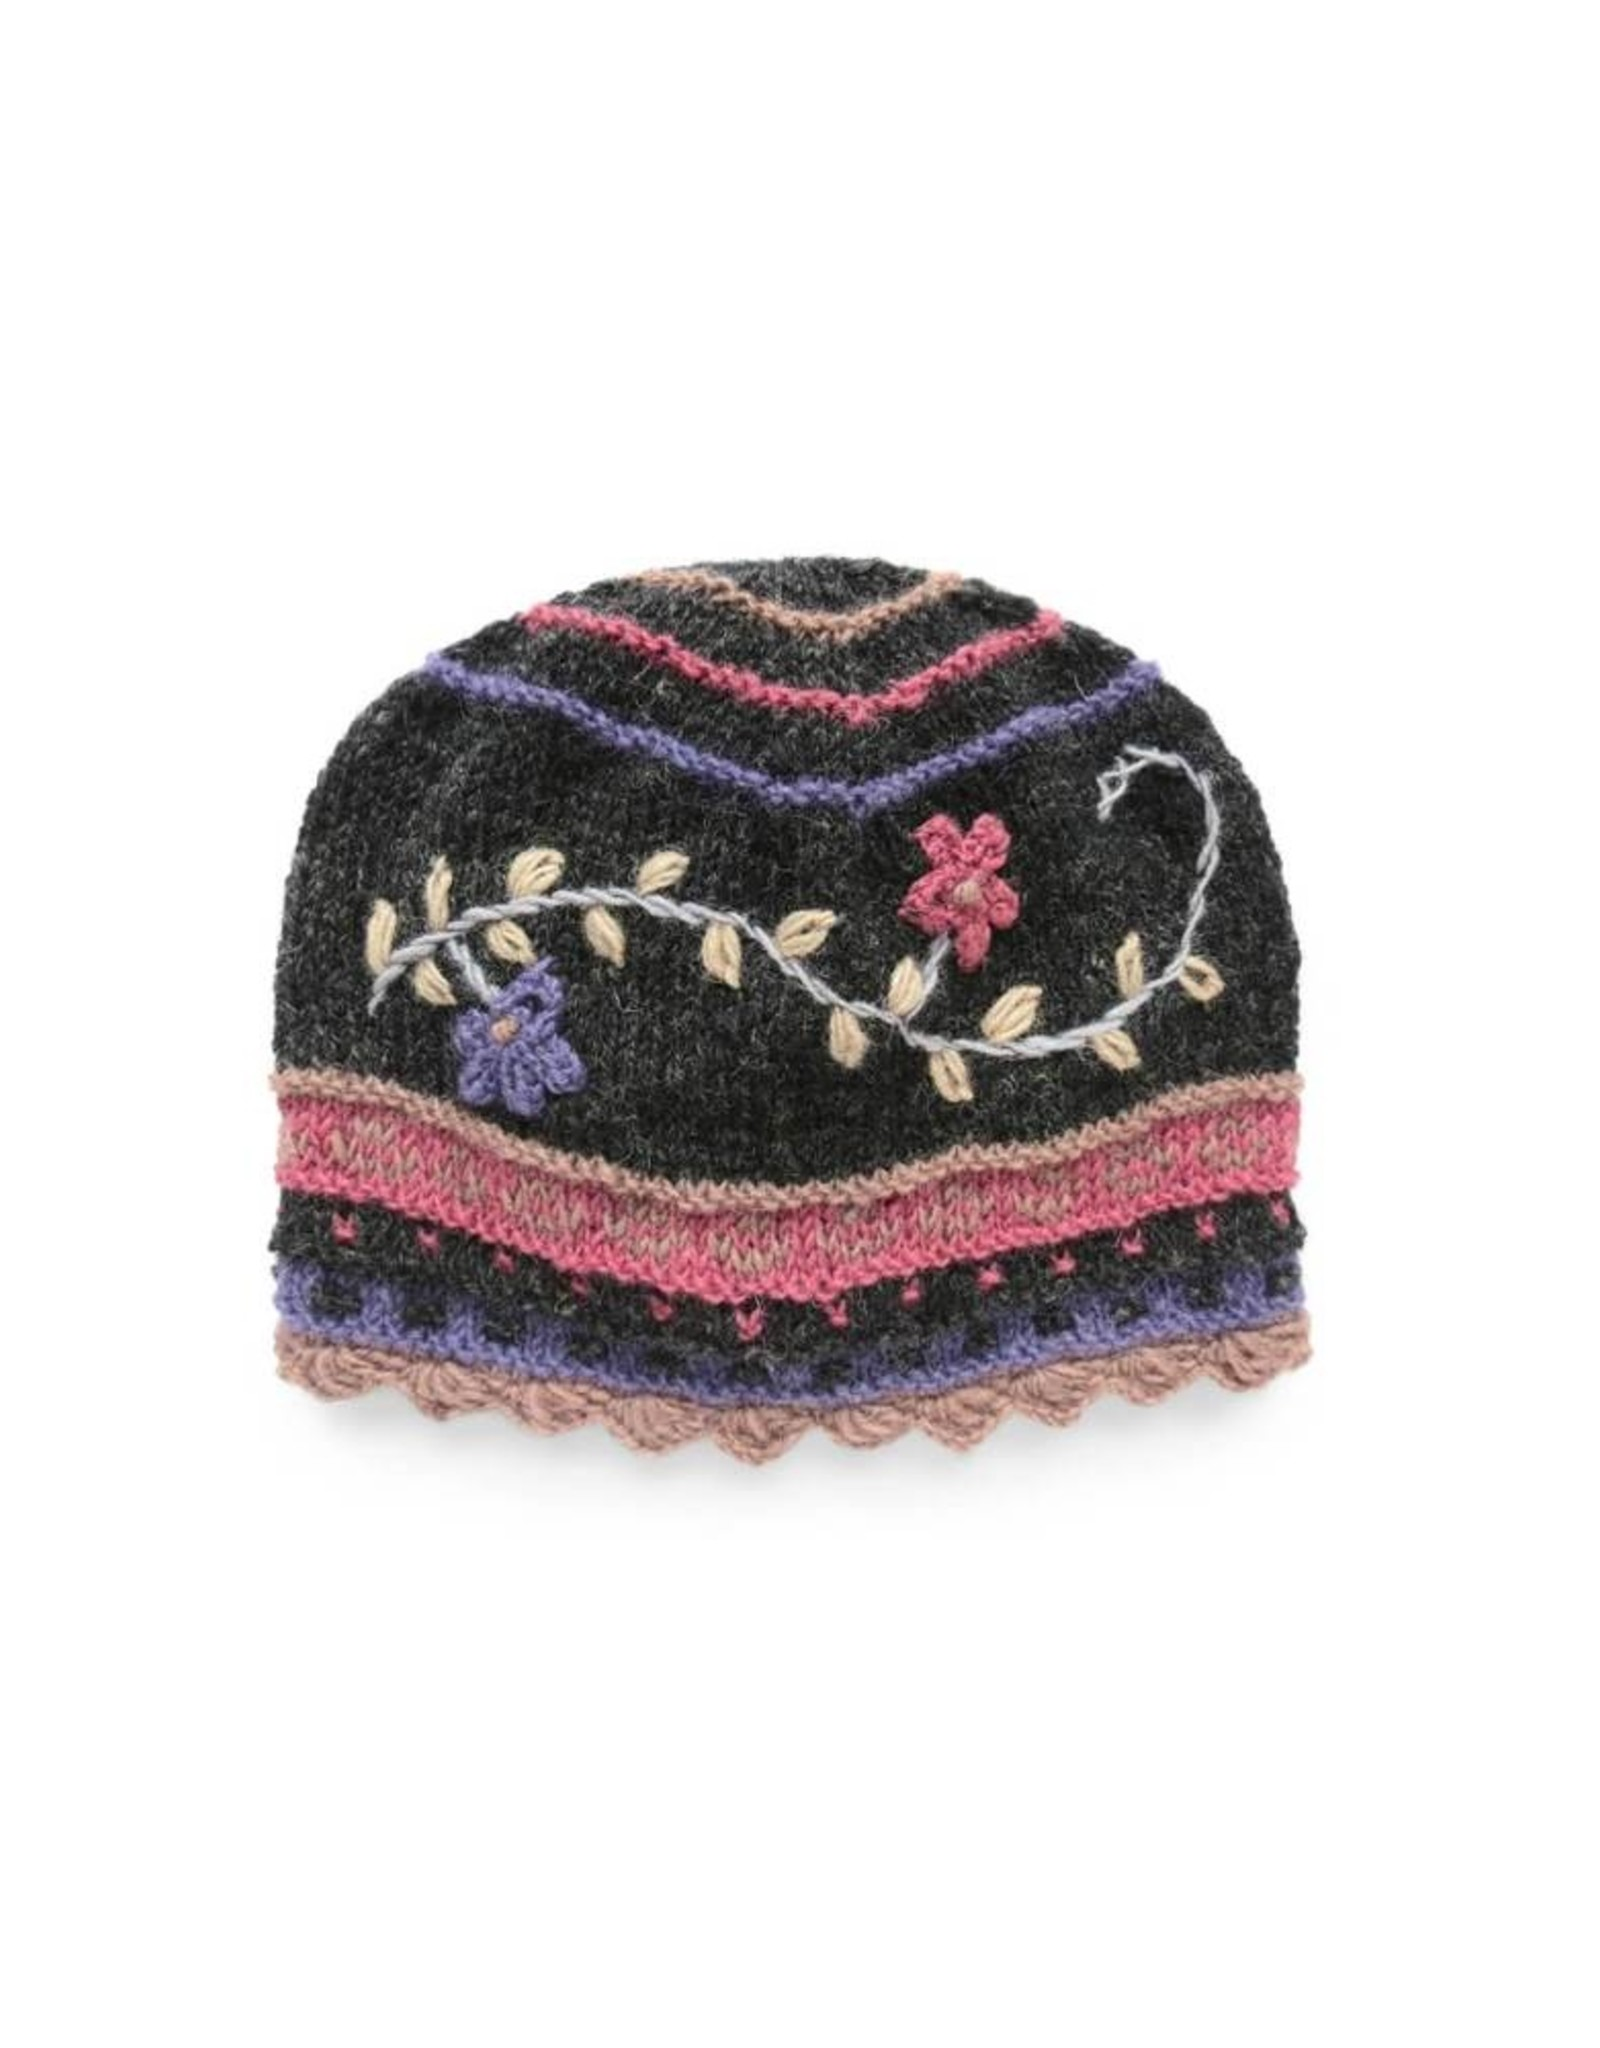 Rising Tide Wool and Fleece Floral Hat